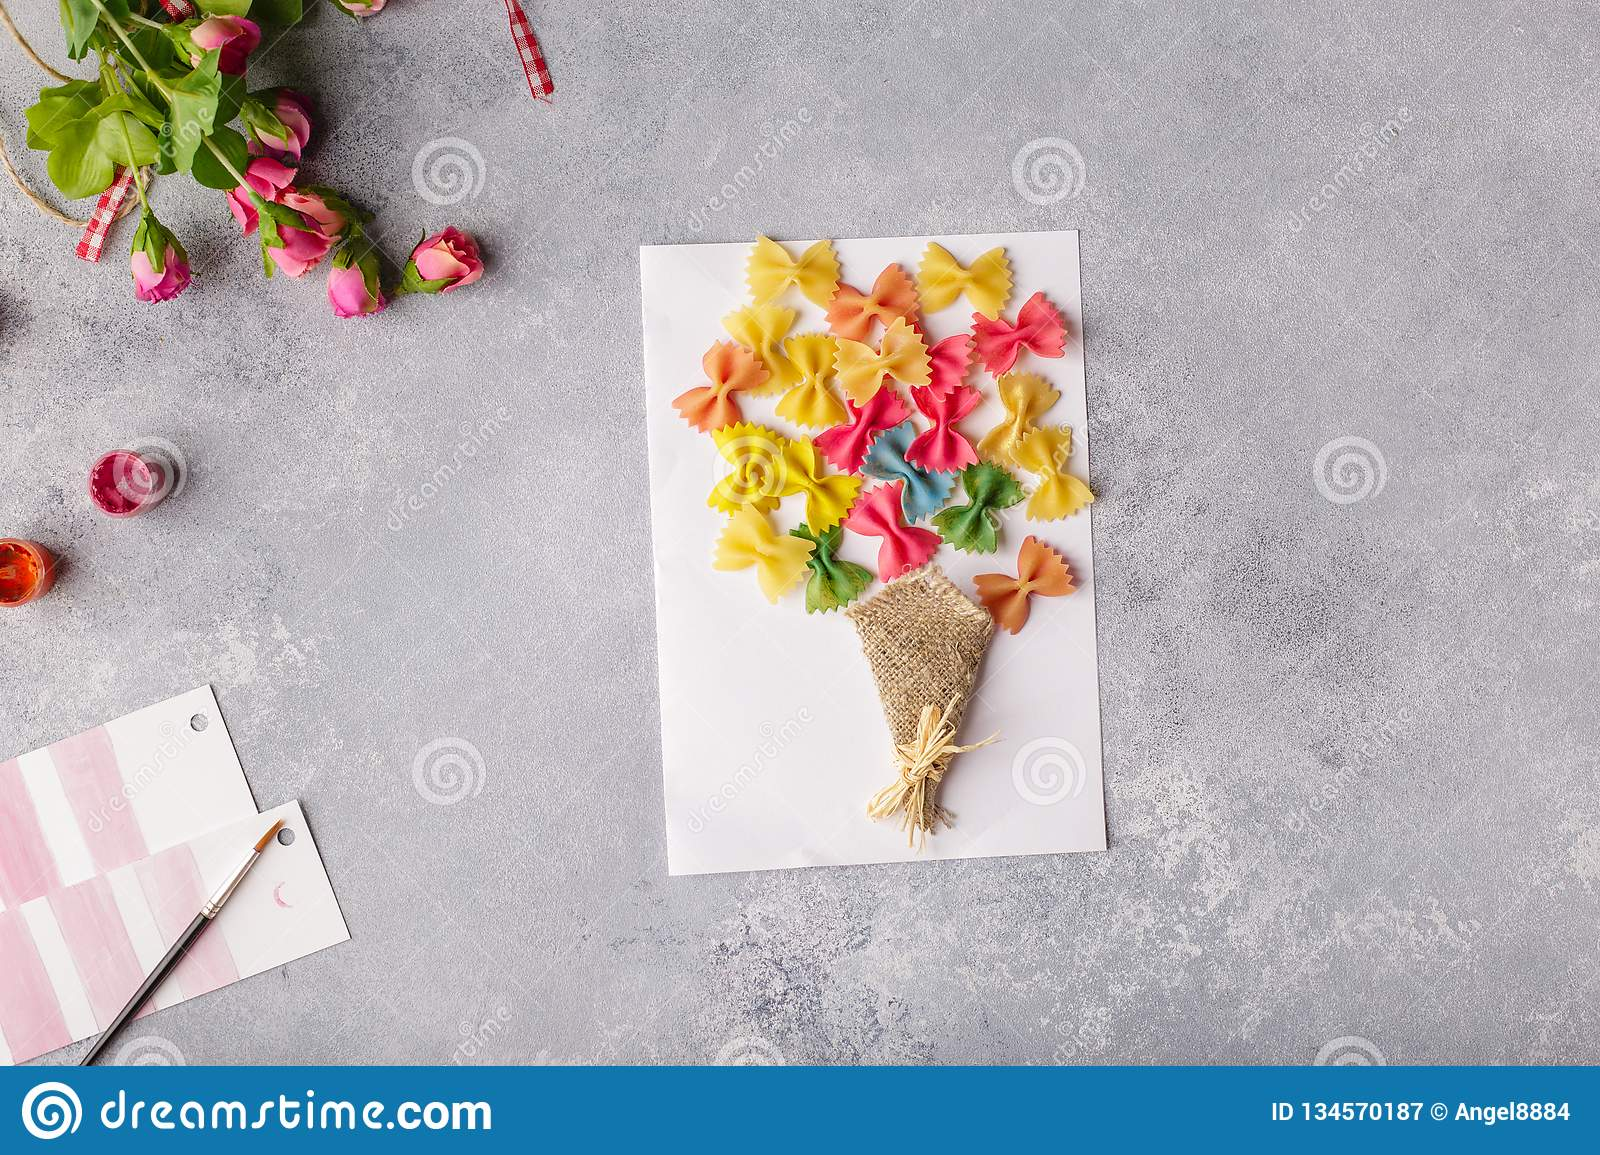 Paper Crafts For Mother Day 8 March Or Birthday Small Child Doing A Bouquet Of Flowers Out Colored And Pasta Mom Simple Gift Idea